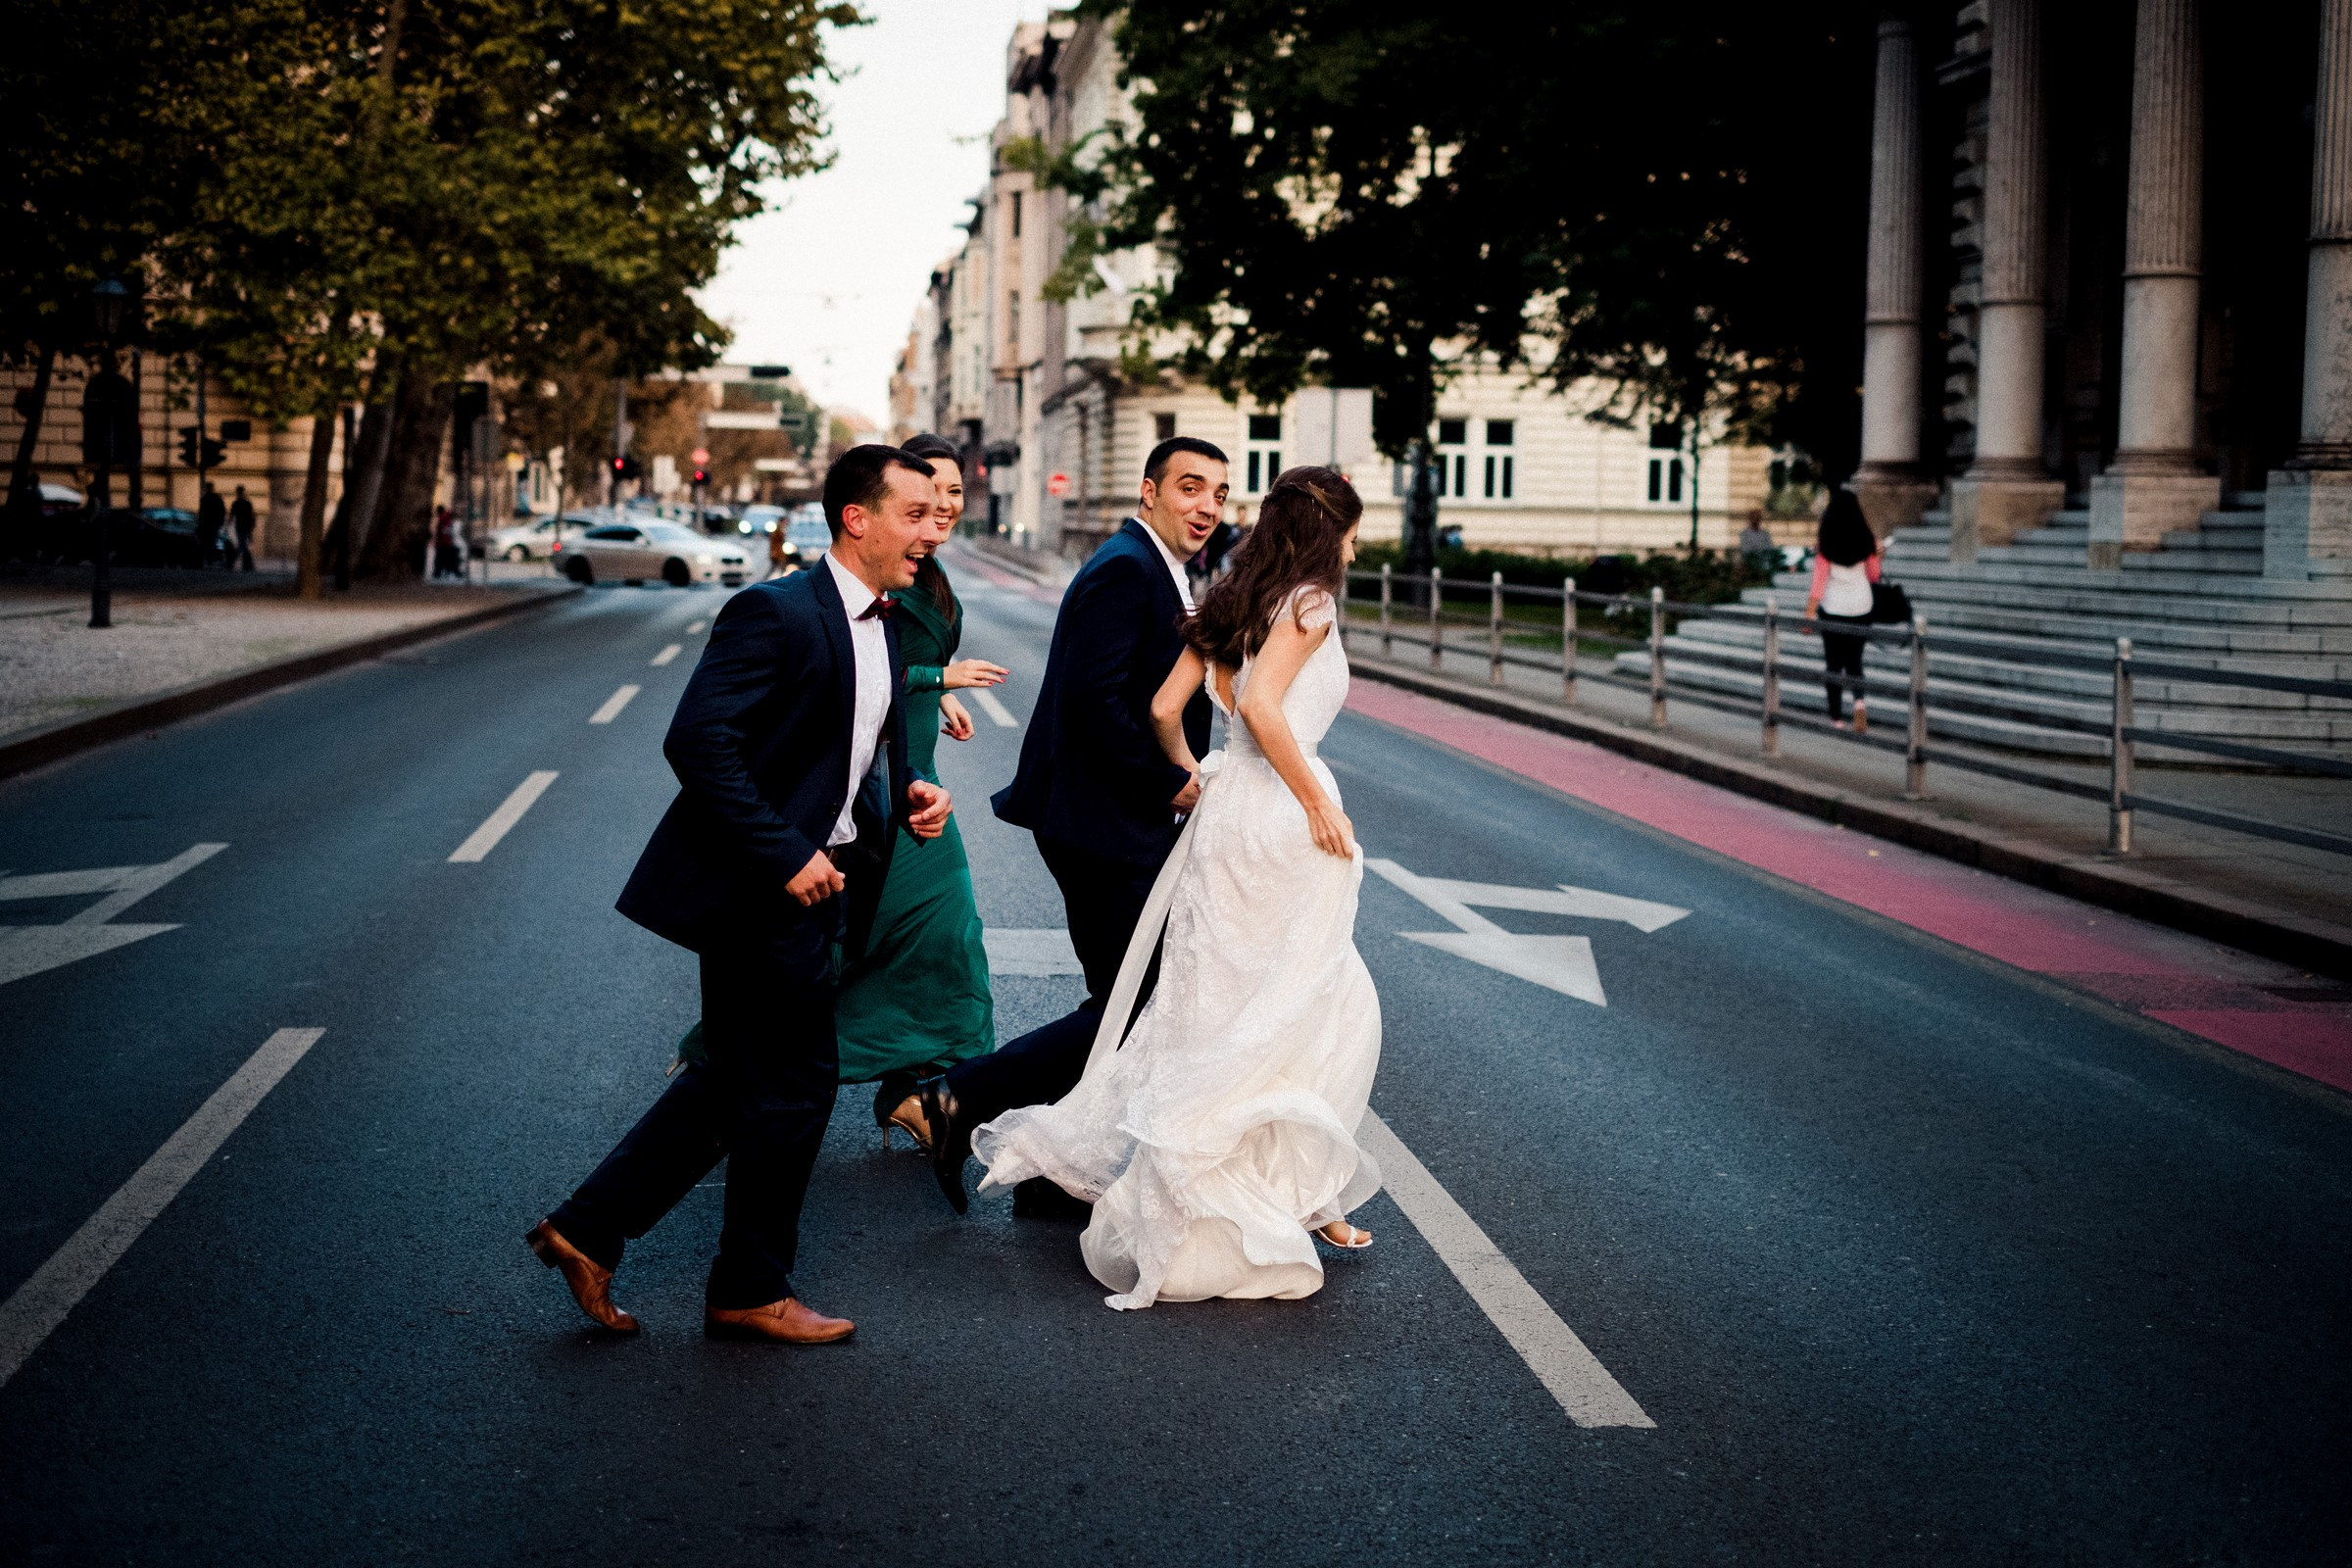 bridal party running across the street